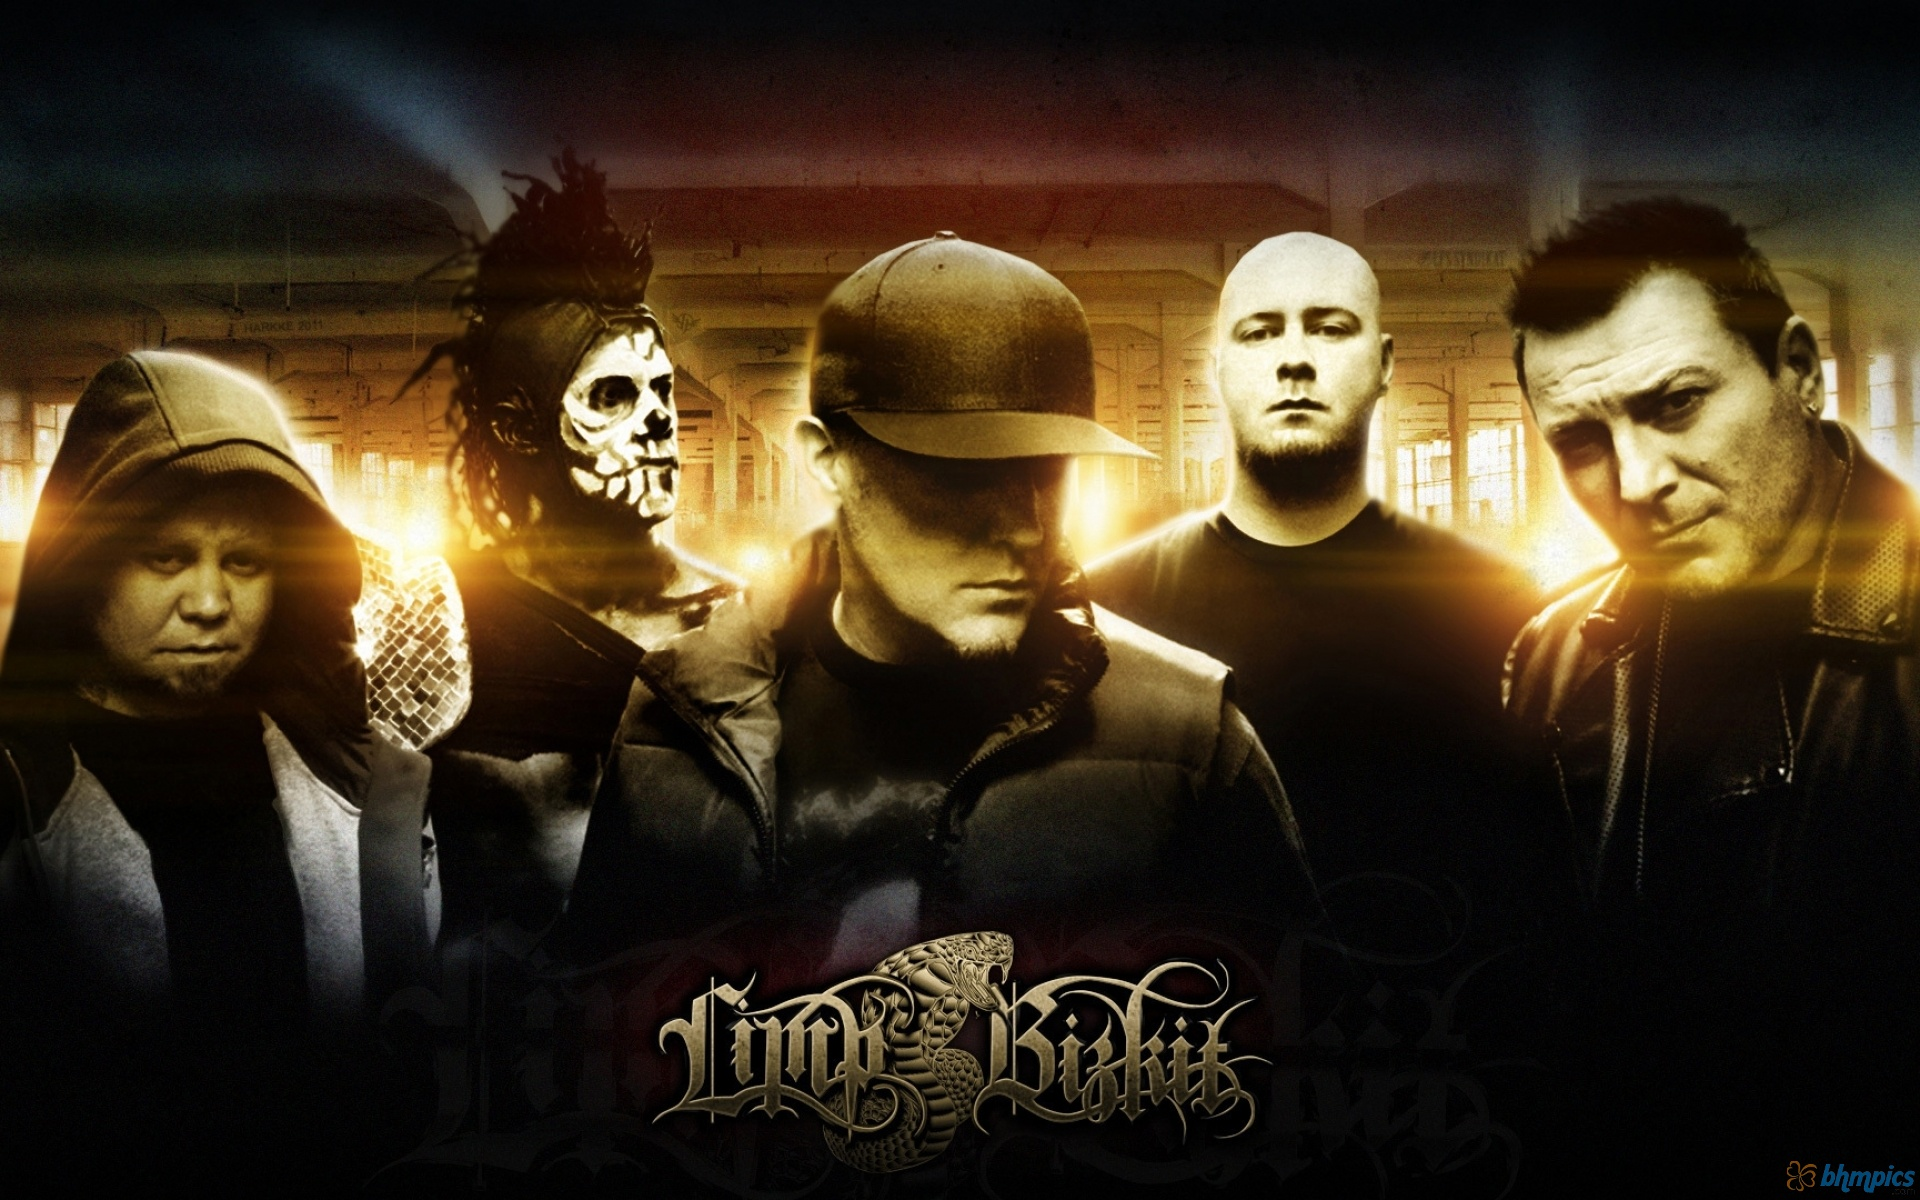 Limp Bizkit Backgrounds on Wallpapers Vista